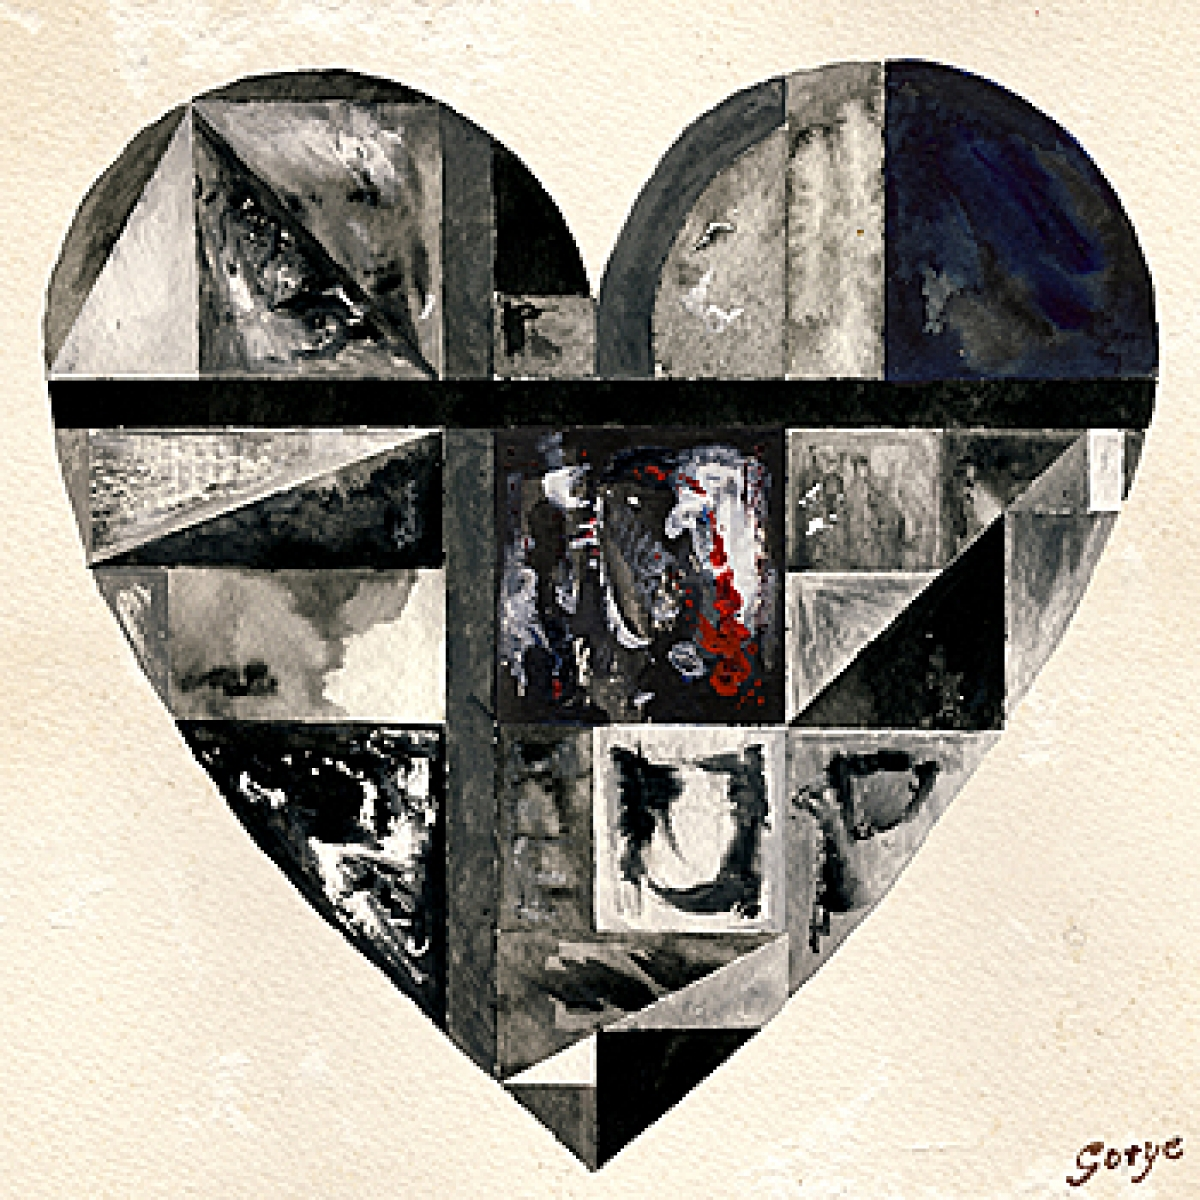 GOTYE - Somebody That I Used To Know (feat. Kimbra)